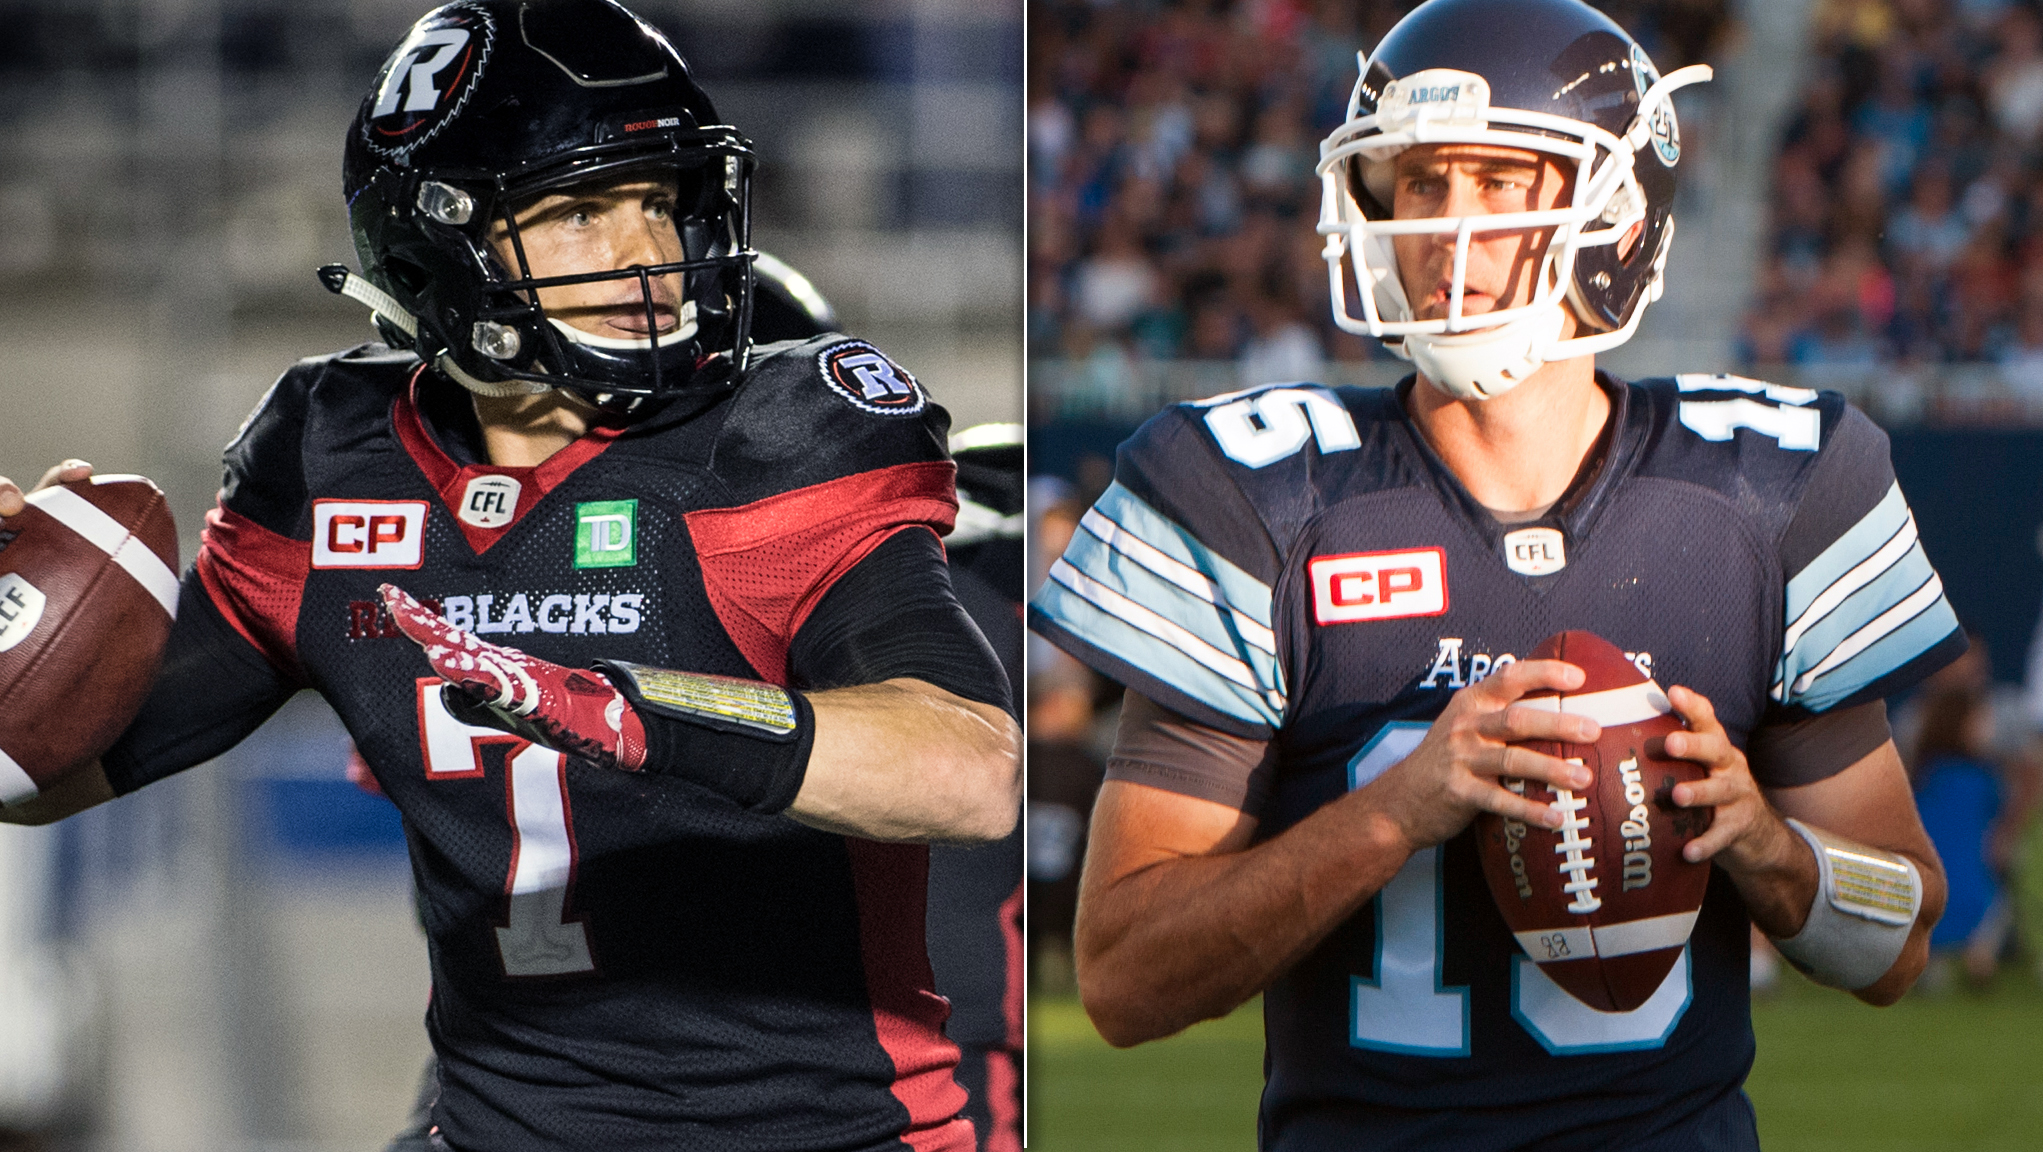 July 24: Ottawa Redblacks vs. Toronto Argonauts